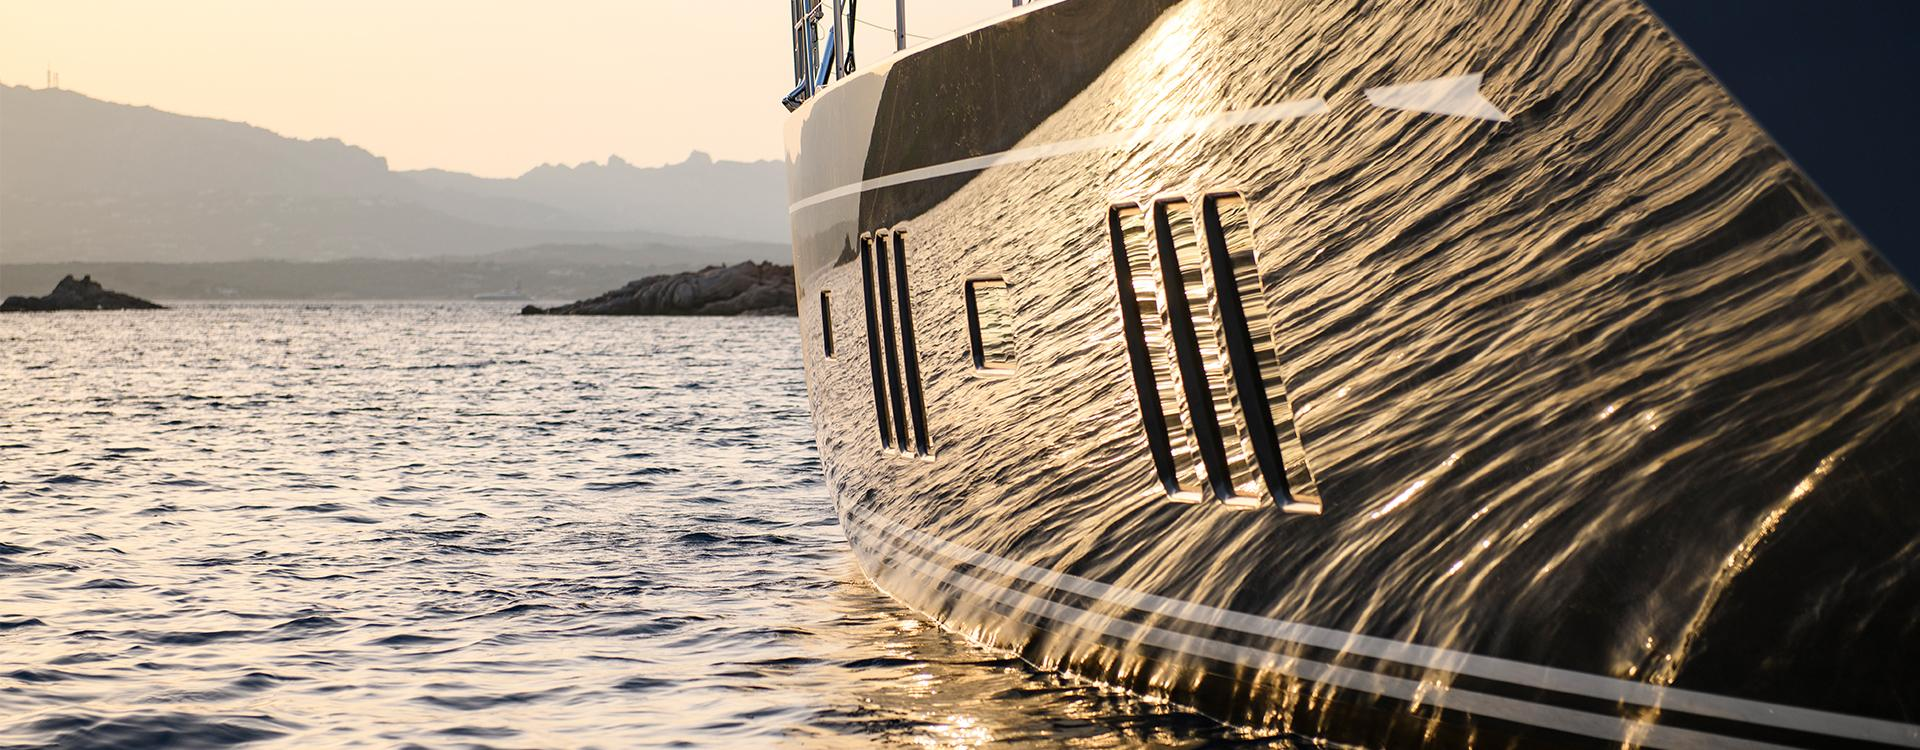 New Oyster Luxury Sailing Yacht at Anchor